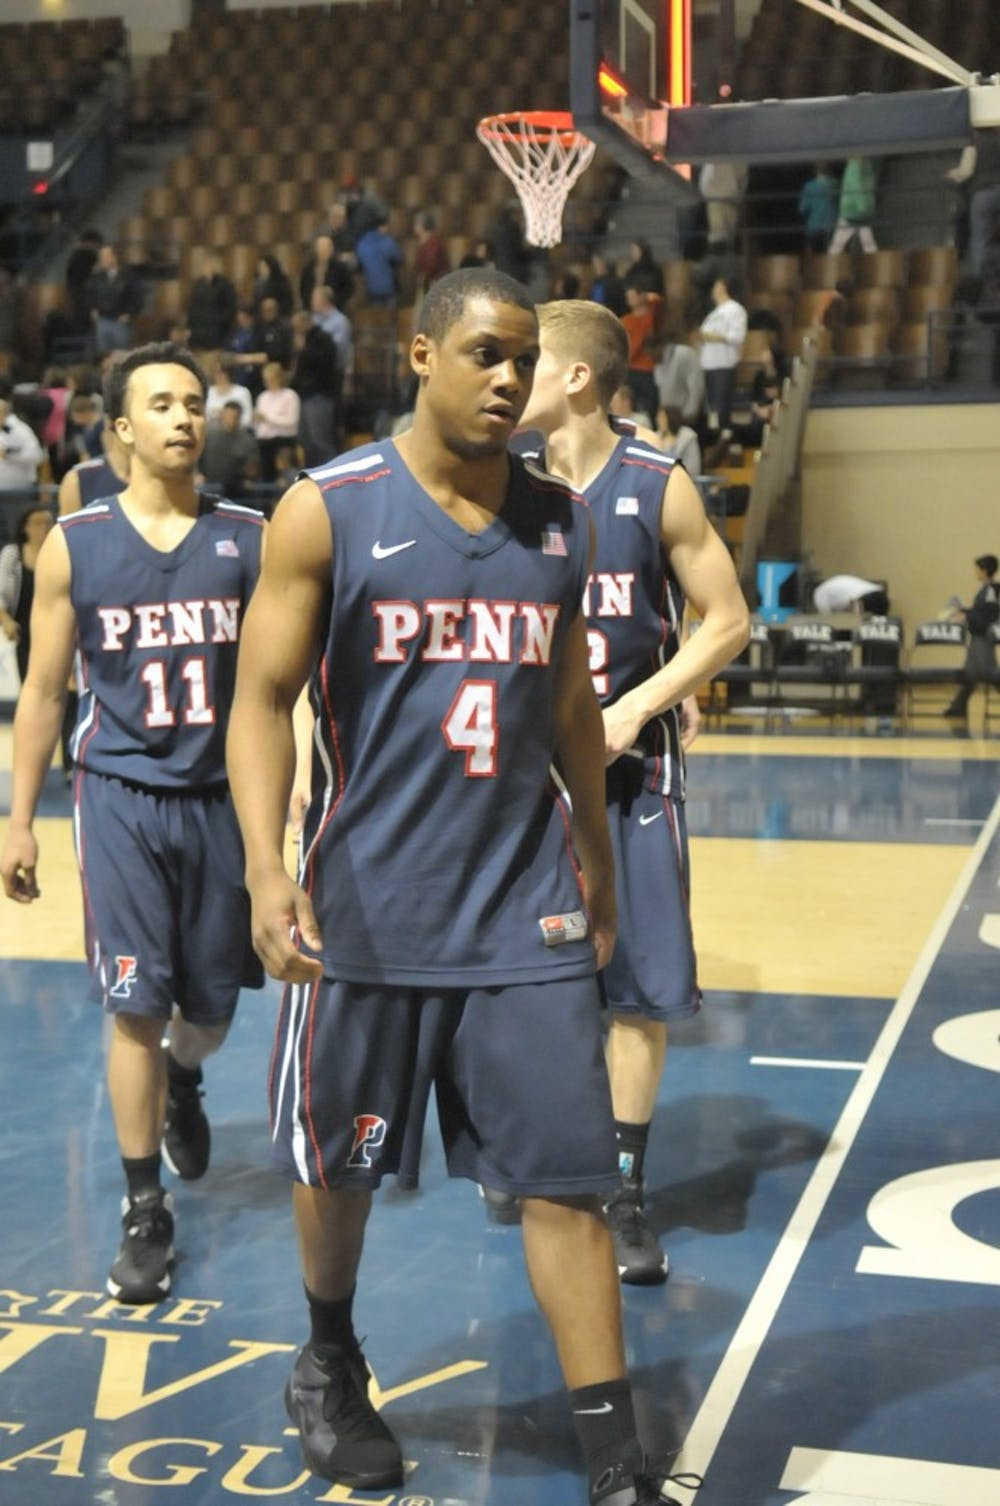 Penn guard Jamal Lewis,like the rest of his teammates, was stunned after Penn's blowout loss to Yale on Friday night.